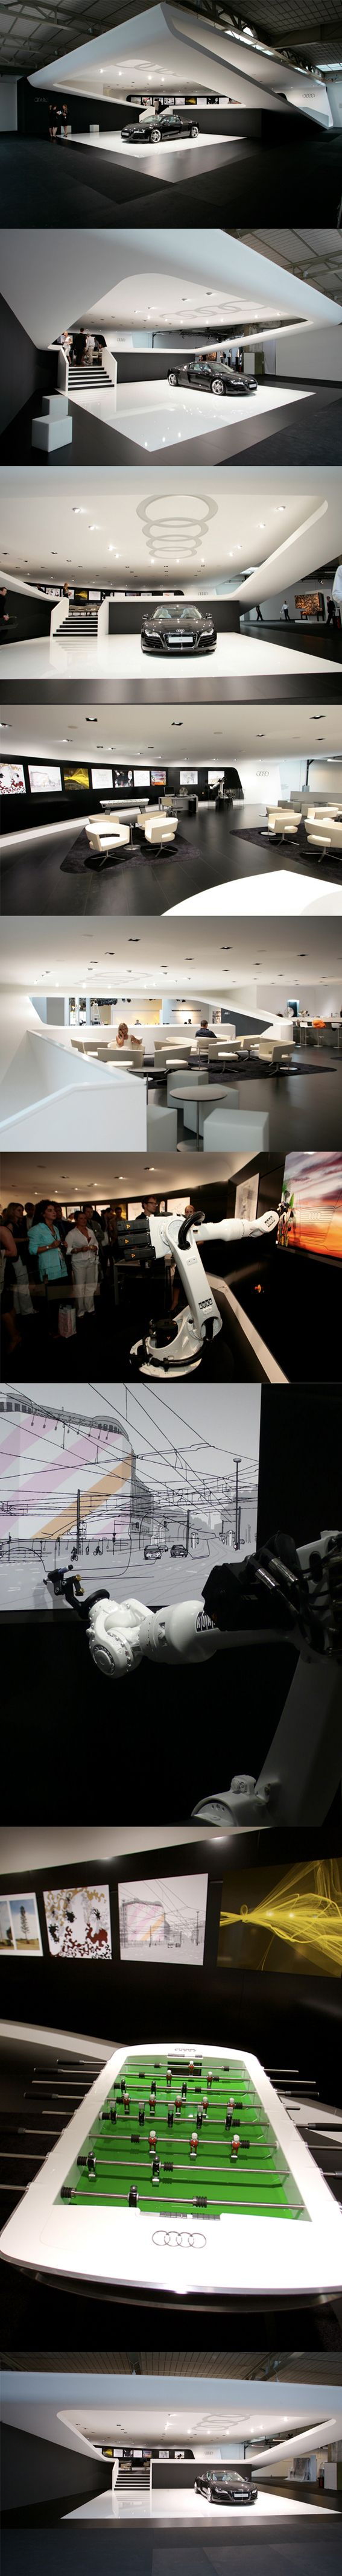 Audi / Art Basel 2008   At the Design Miami/Basel Audi presents itself as creative manufacturer with trendsetting design.